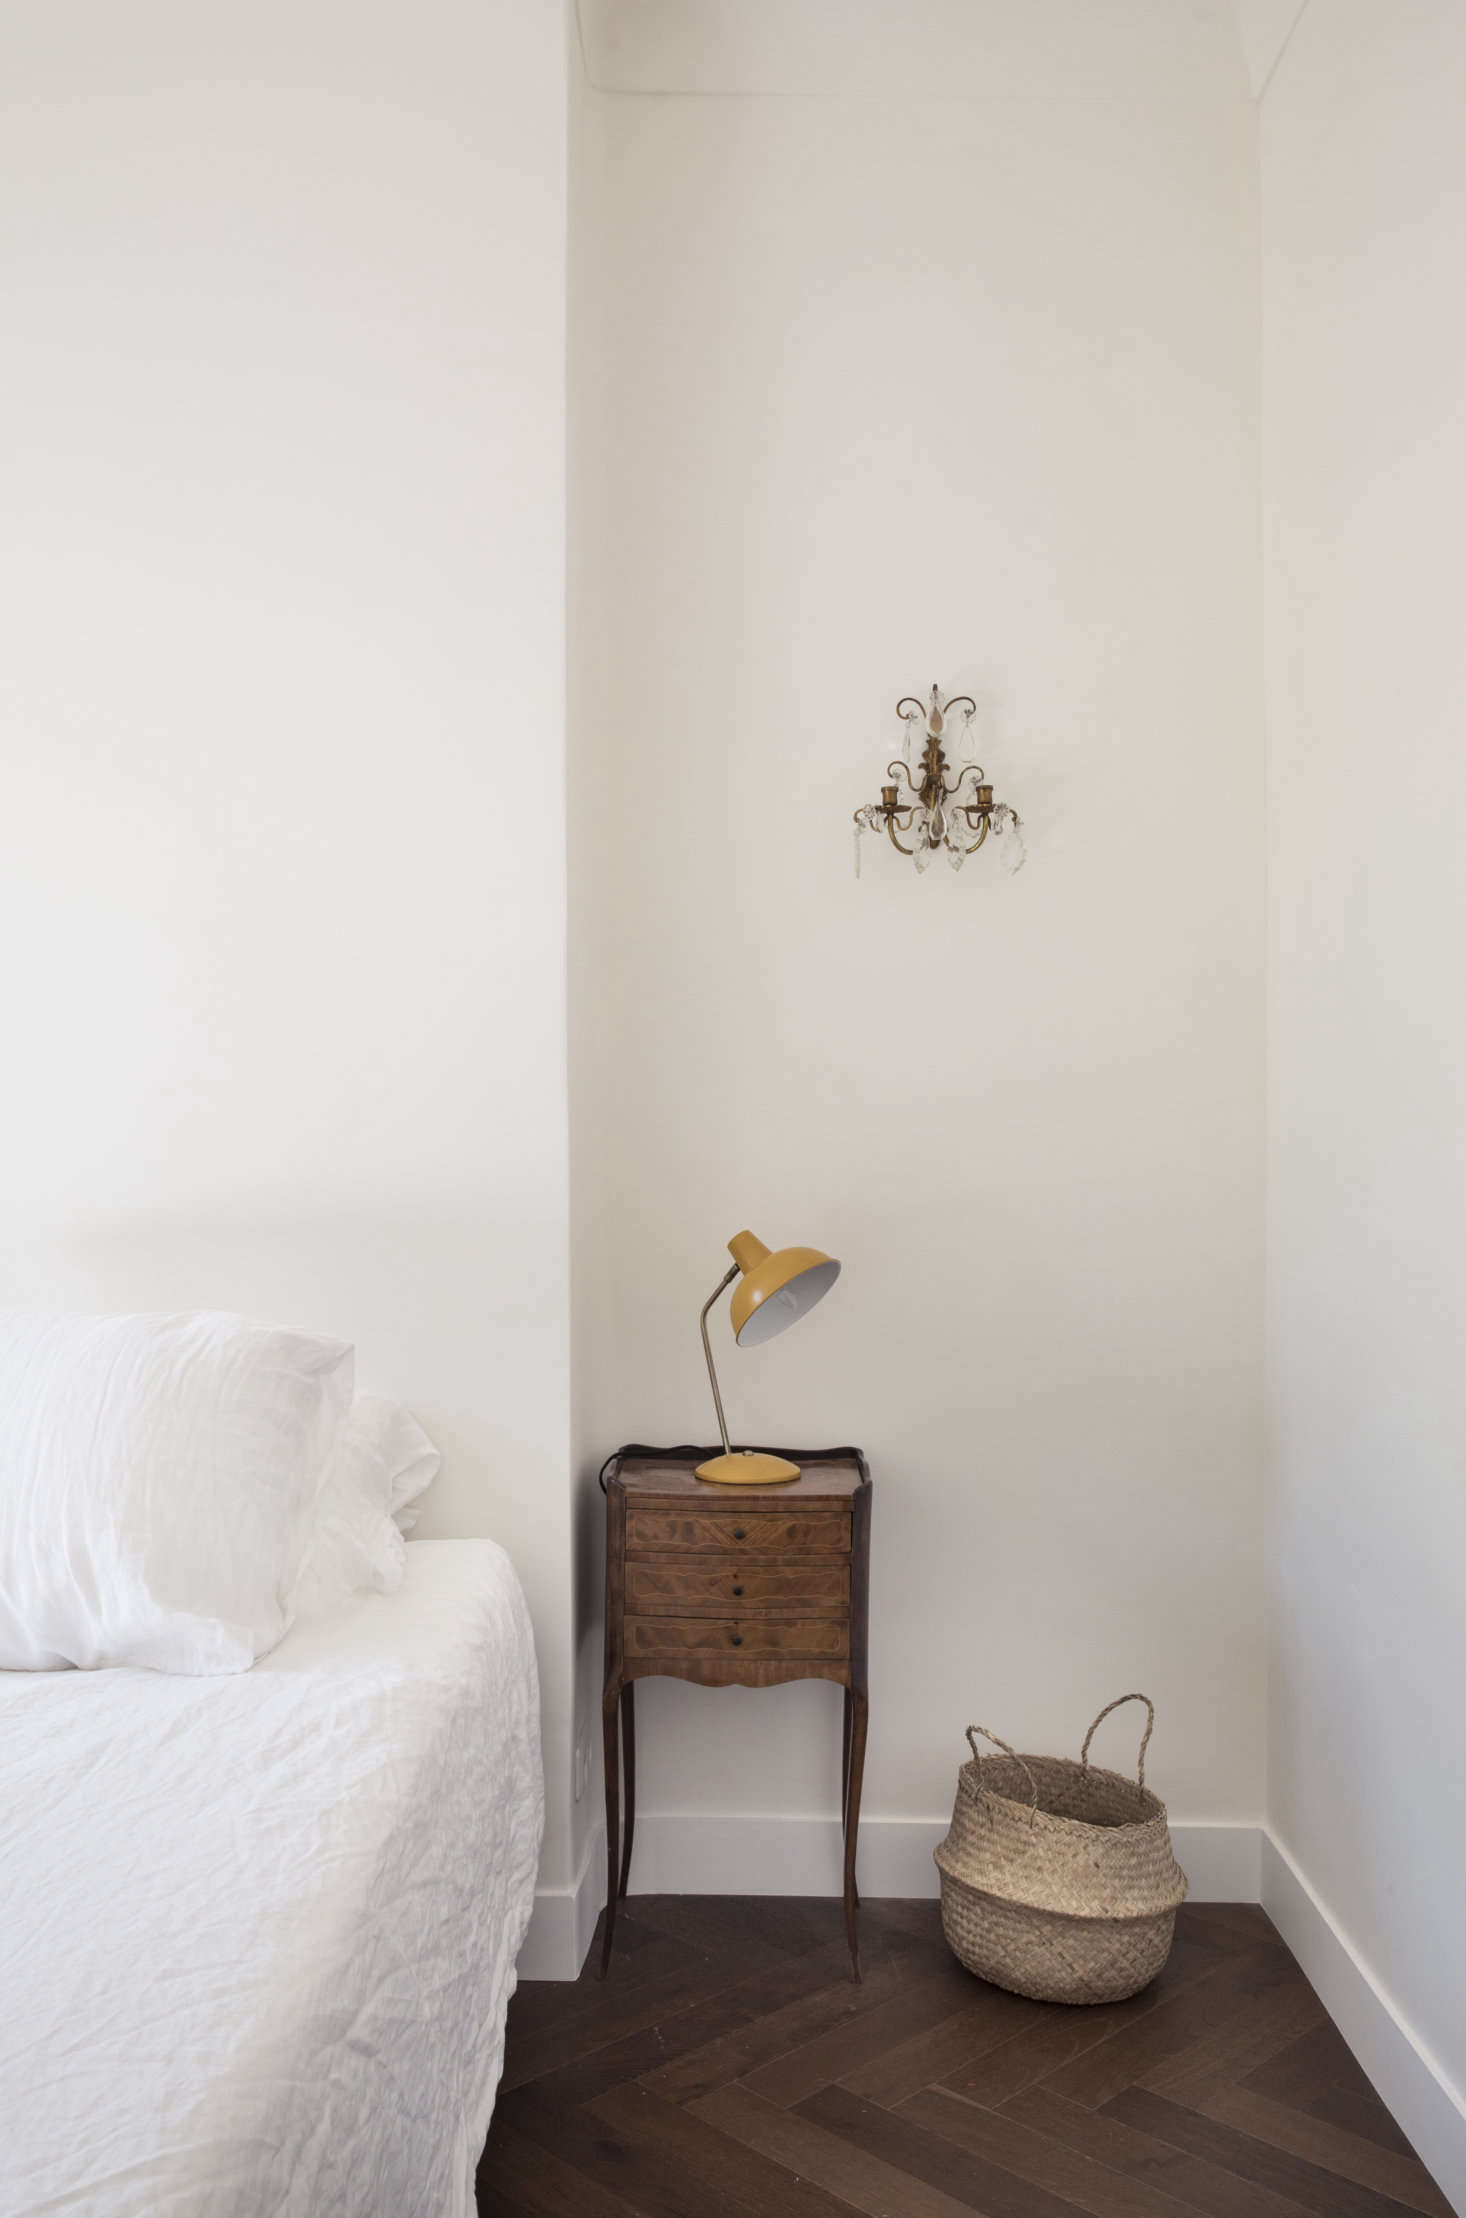 The bedside tables are from the Antibes brocante market and the sconces are from Cours Saleya in Nice.